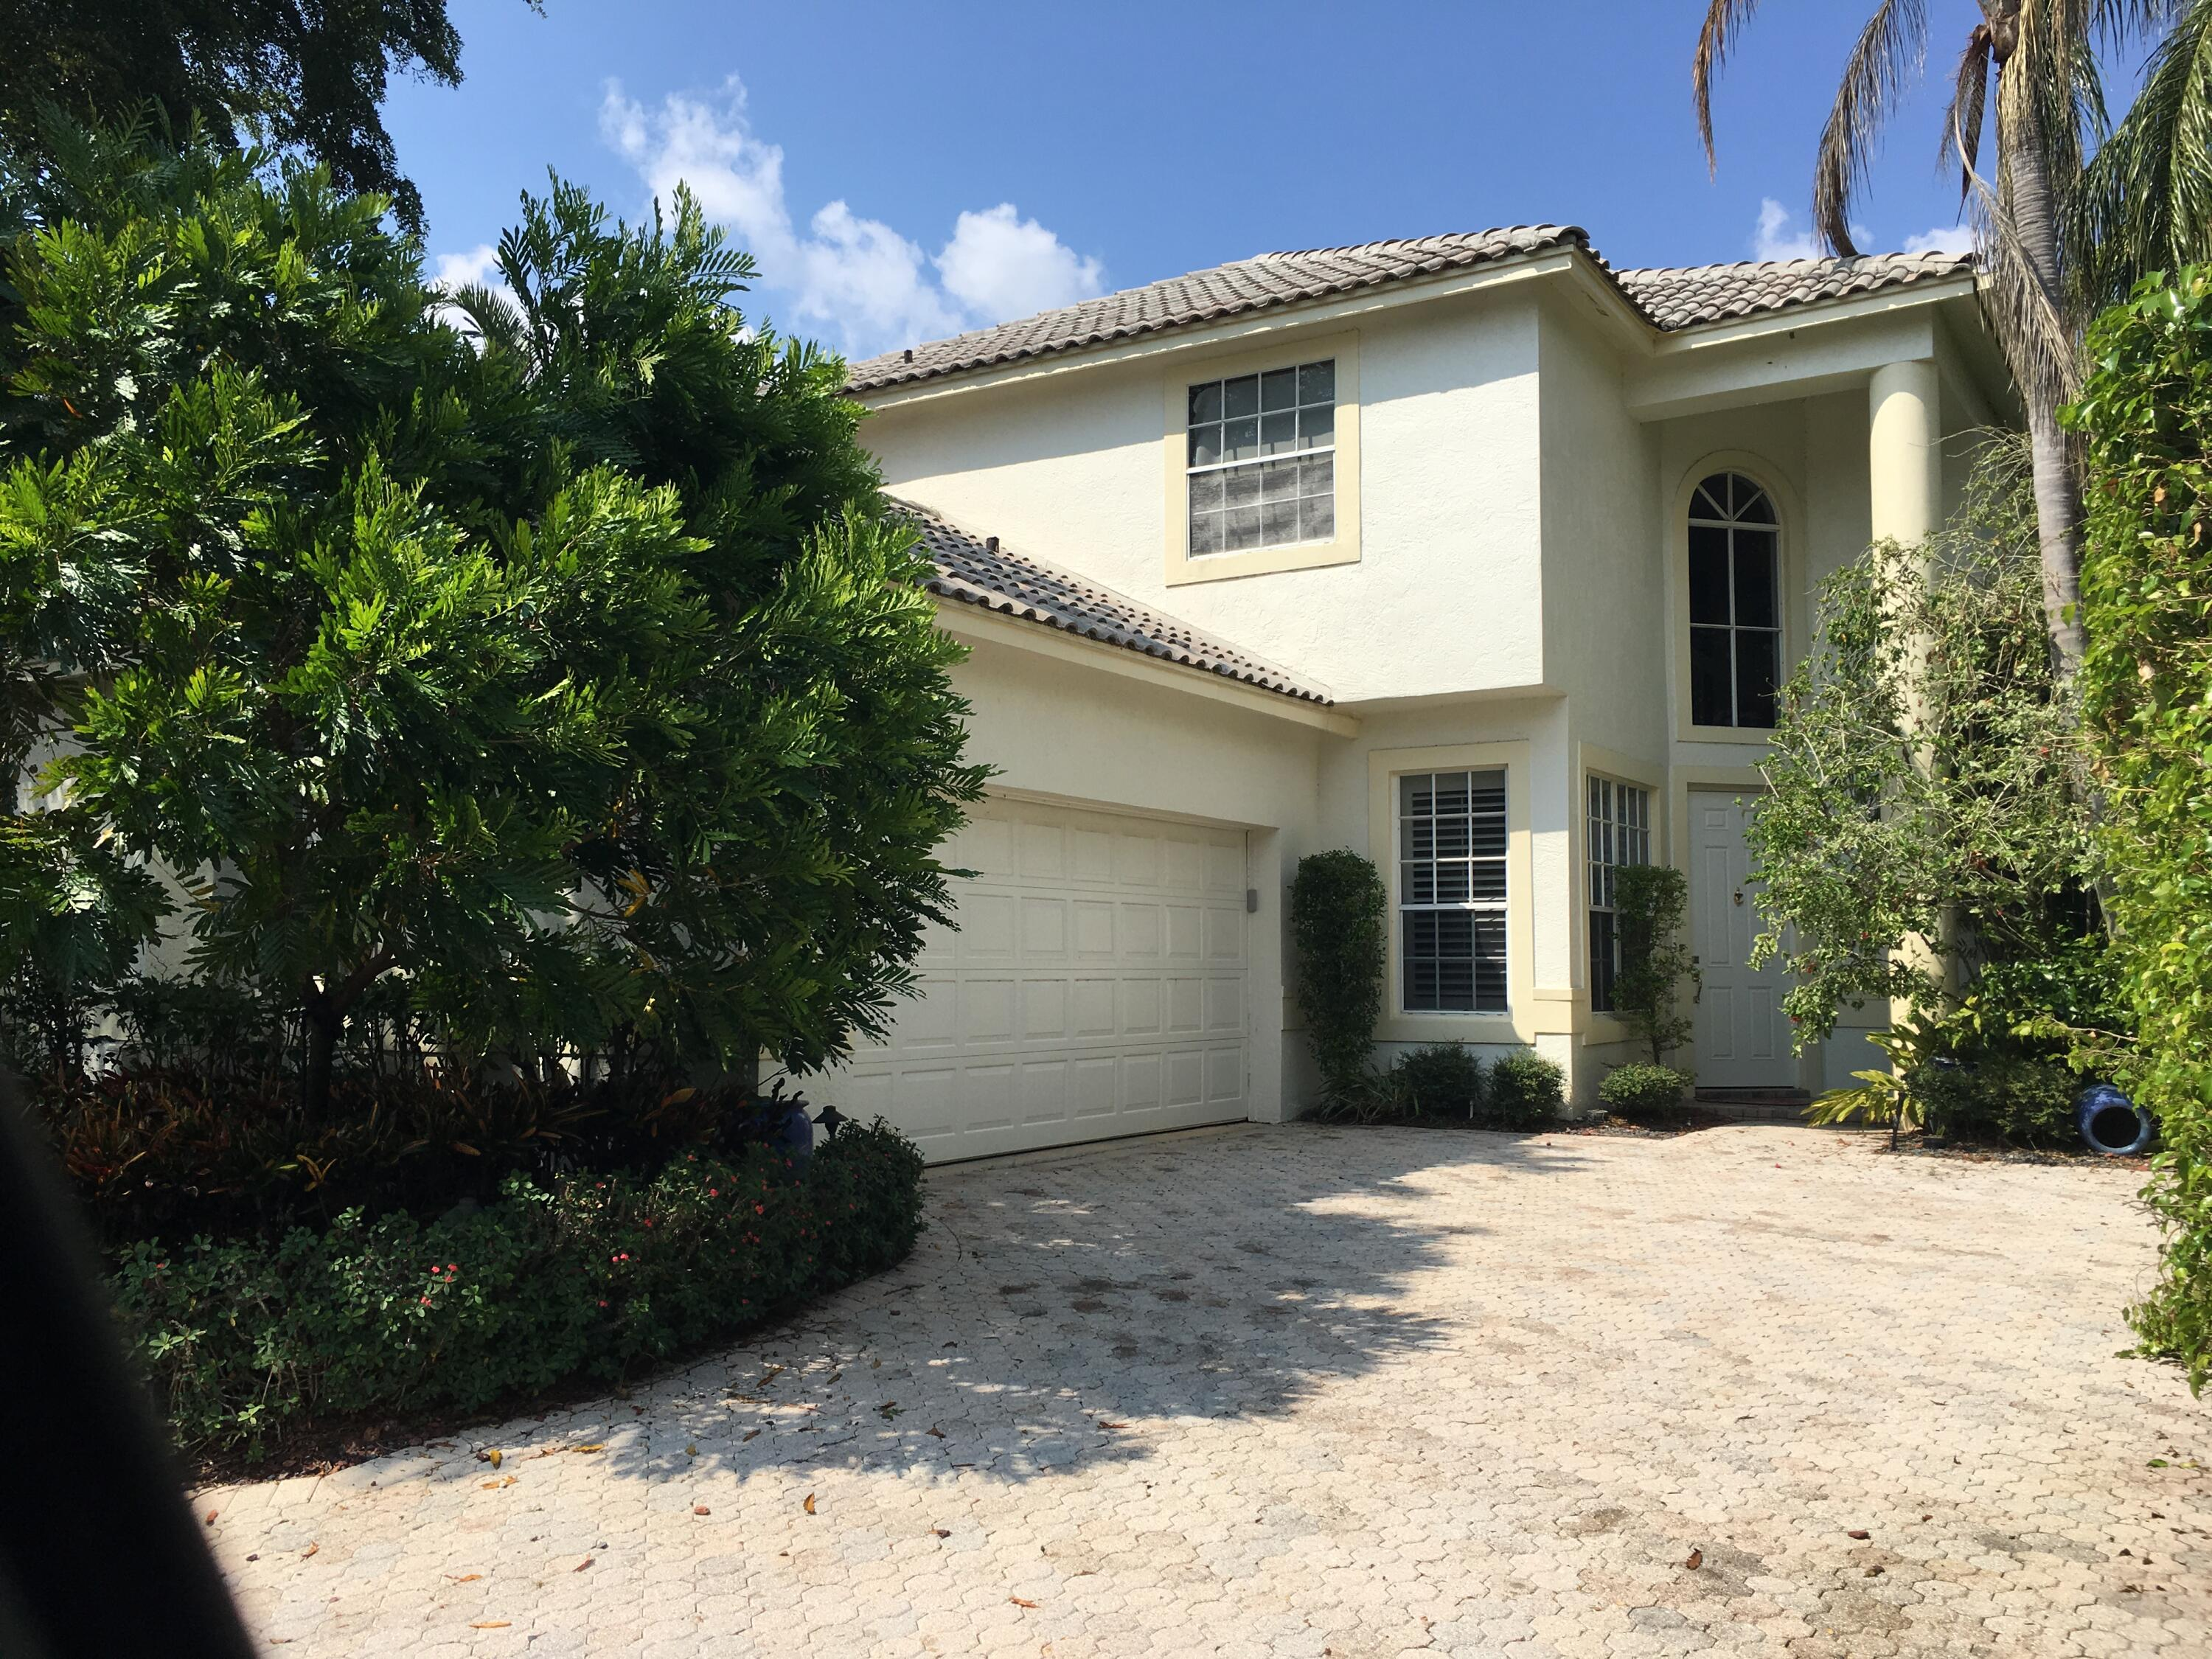 BEAUTIFUL 4 BEDROOM 3 1/2 BATH POOL HOME IN THE POLO CLUB.